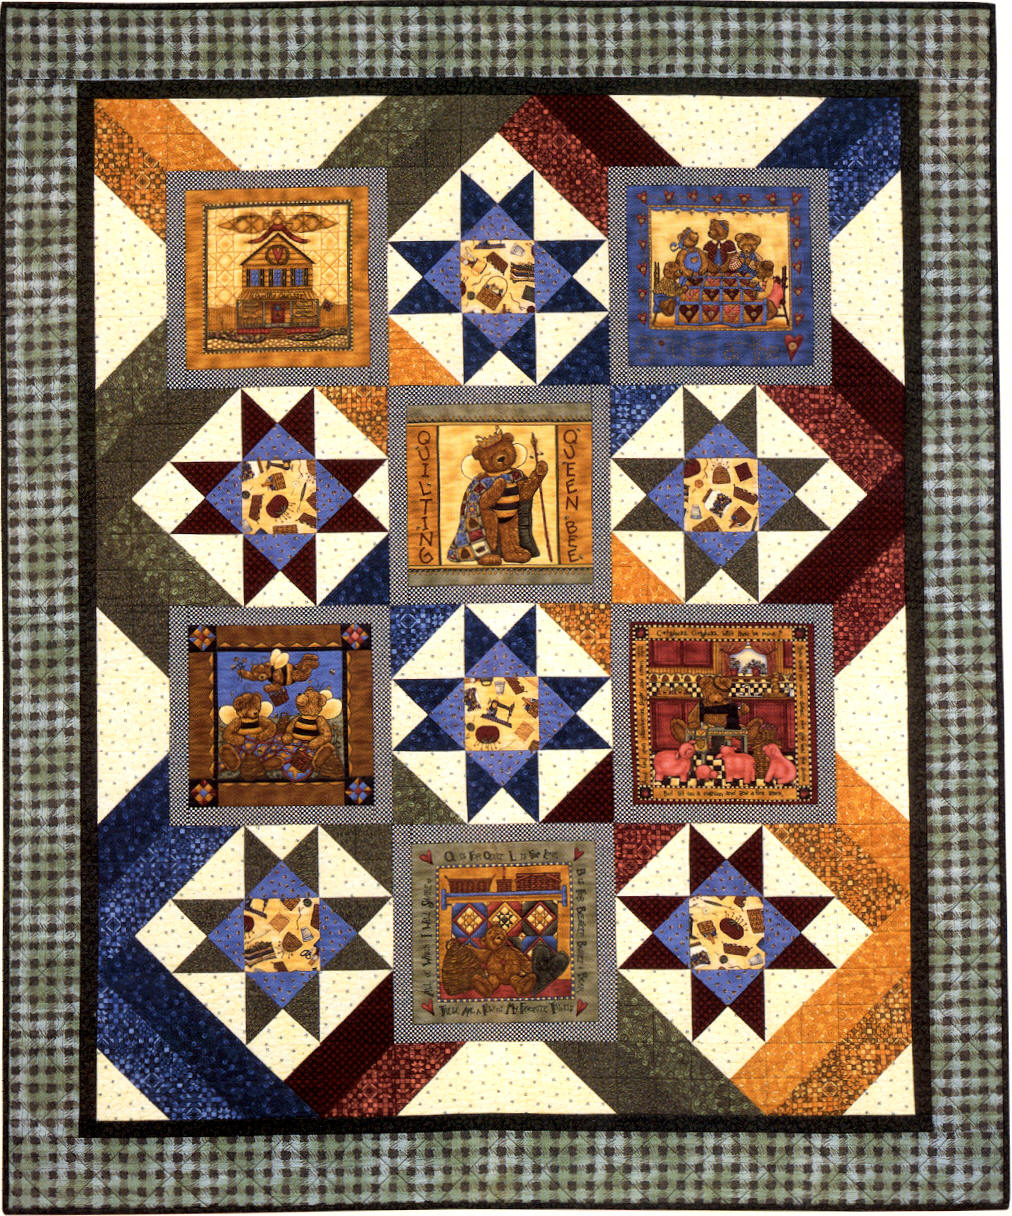 civil war quilts, vintage crossstitch quilt kits kingsize, quilt sets, quilts